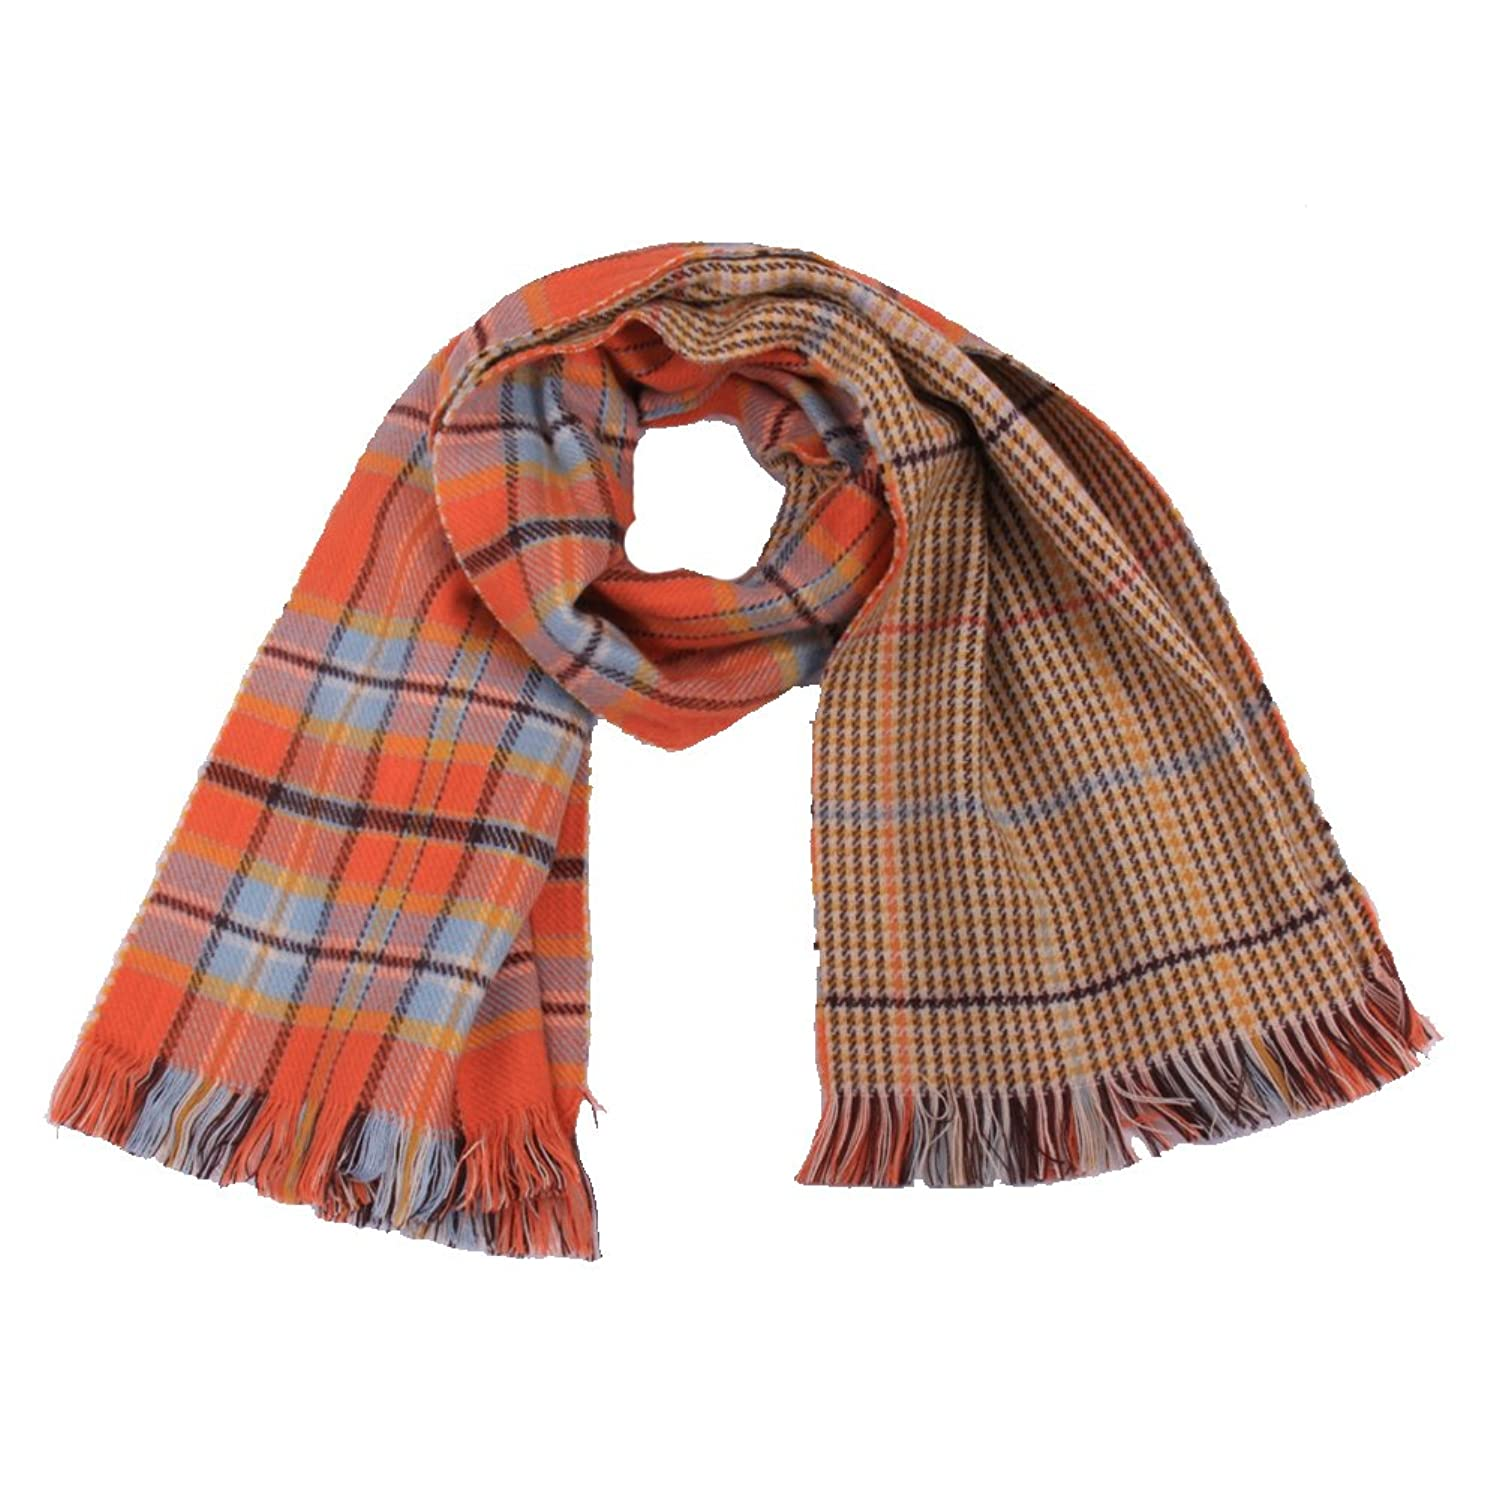 Surker Fashion Striped or Plaid Cashmere Feel Women's Winter Scarf CL00082